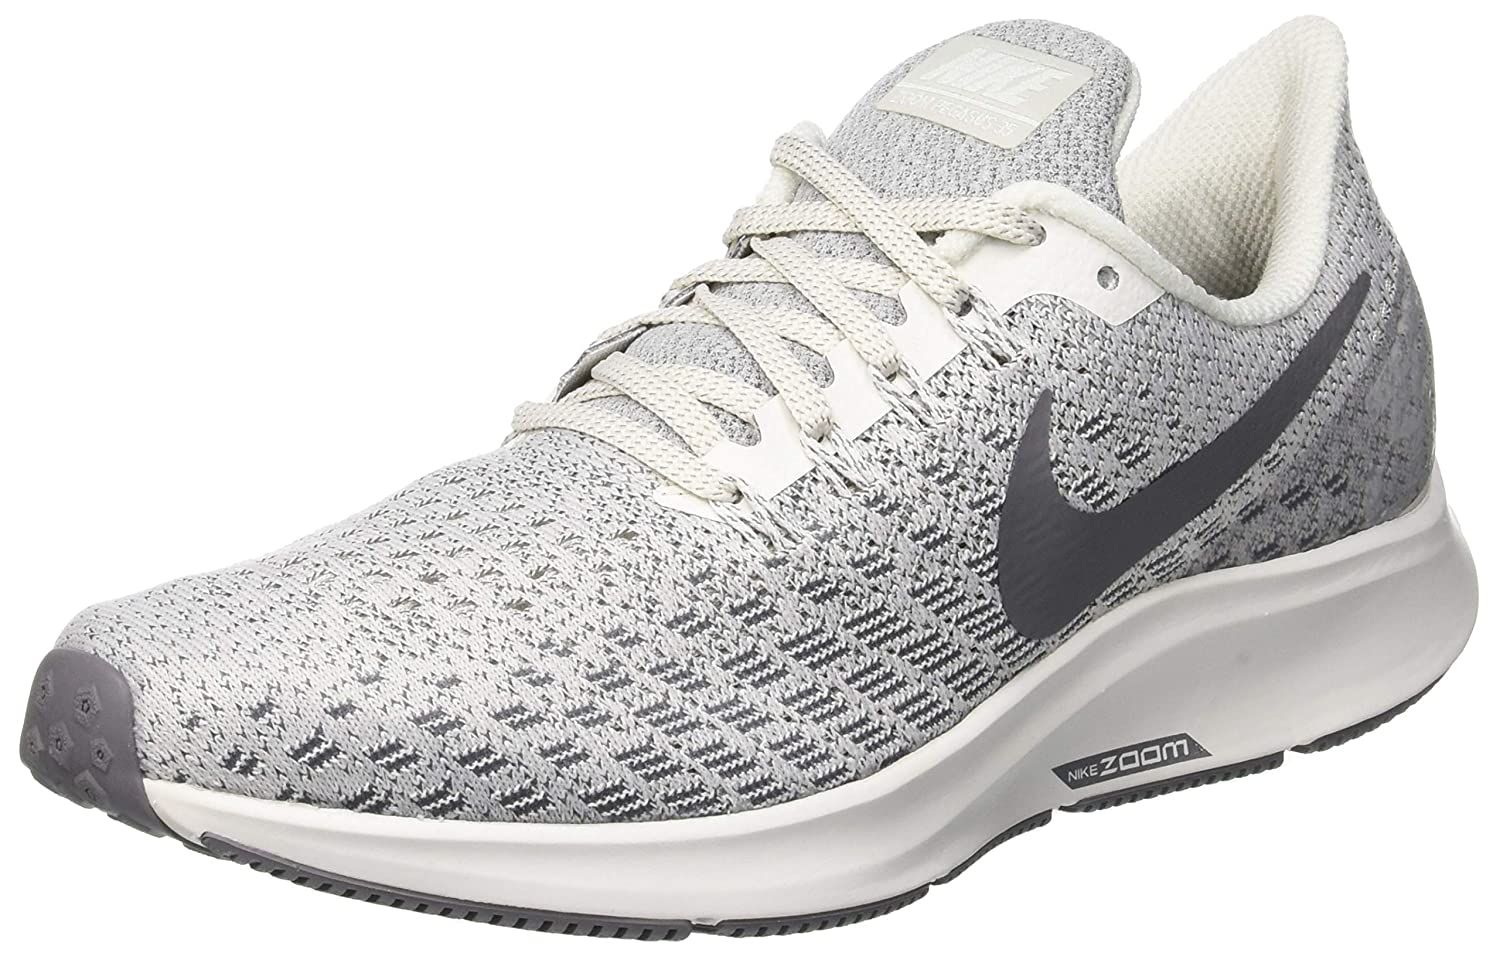 Nike Women s s Air Zoom Pegasus 35 Running Shoes  Amazon.co.uk  Shoes   Bags ece023e6d7